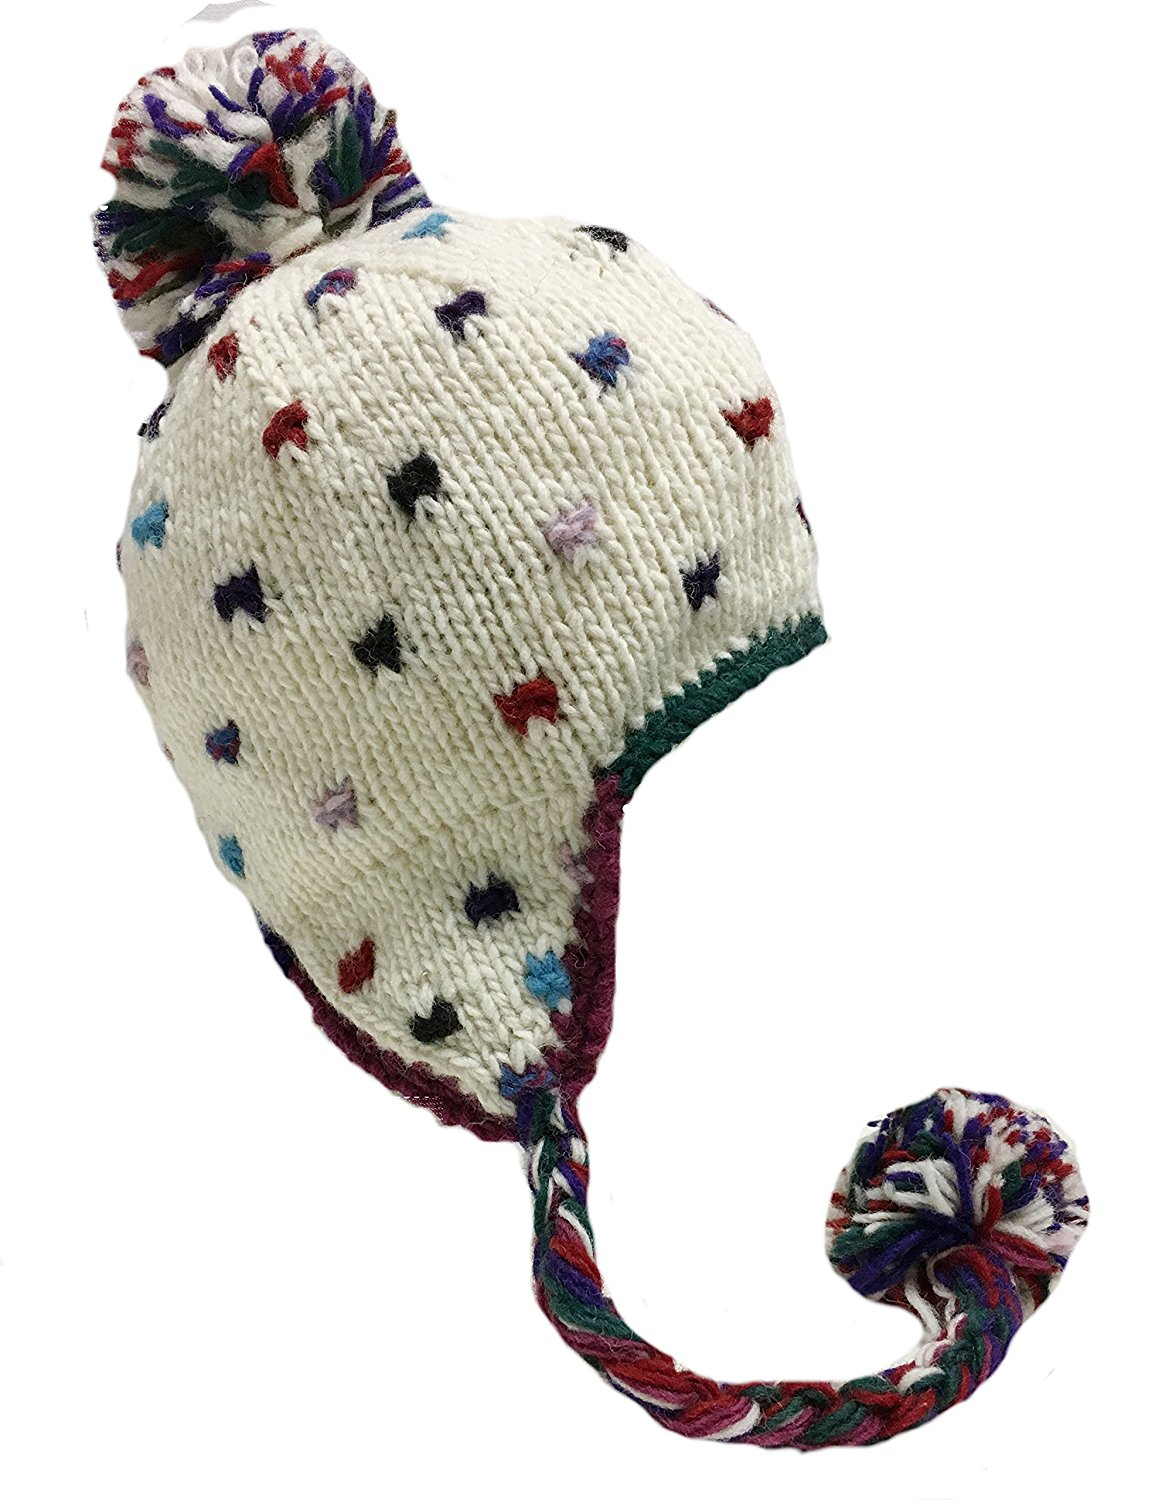 Nepal Hand Knit Sherpa Hat with Ear Flaps – fishingnew